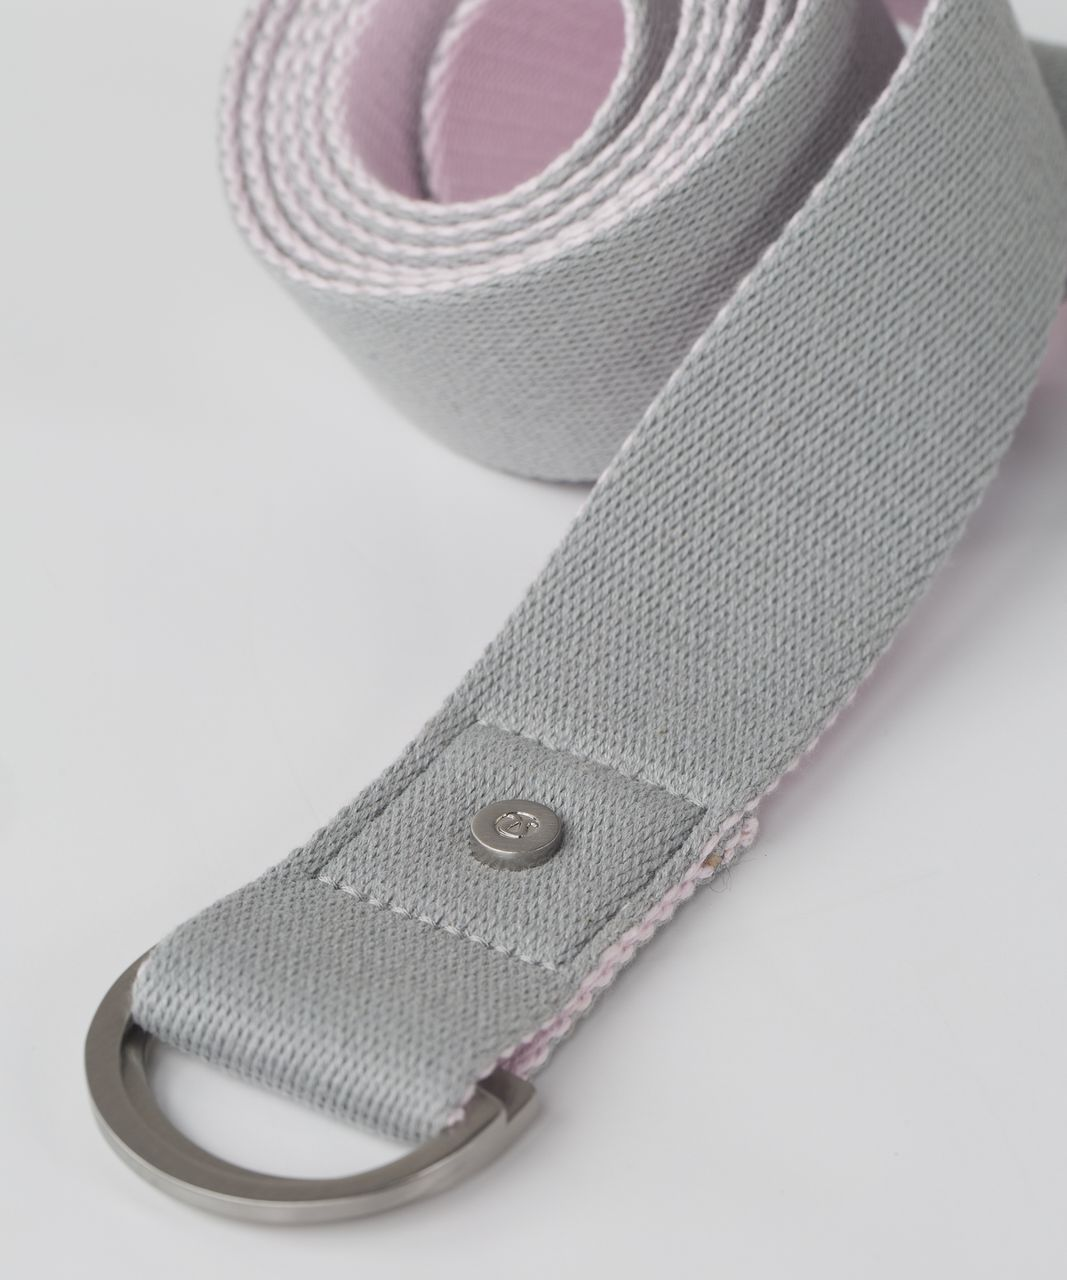 Lululemon No Limits Stretching Strap - Silver Spoon / Powdered Rose